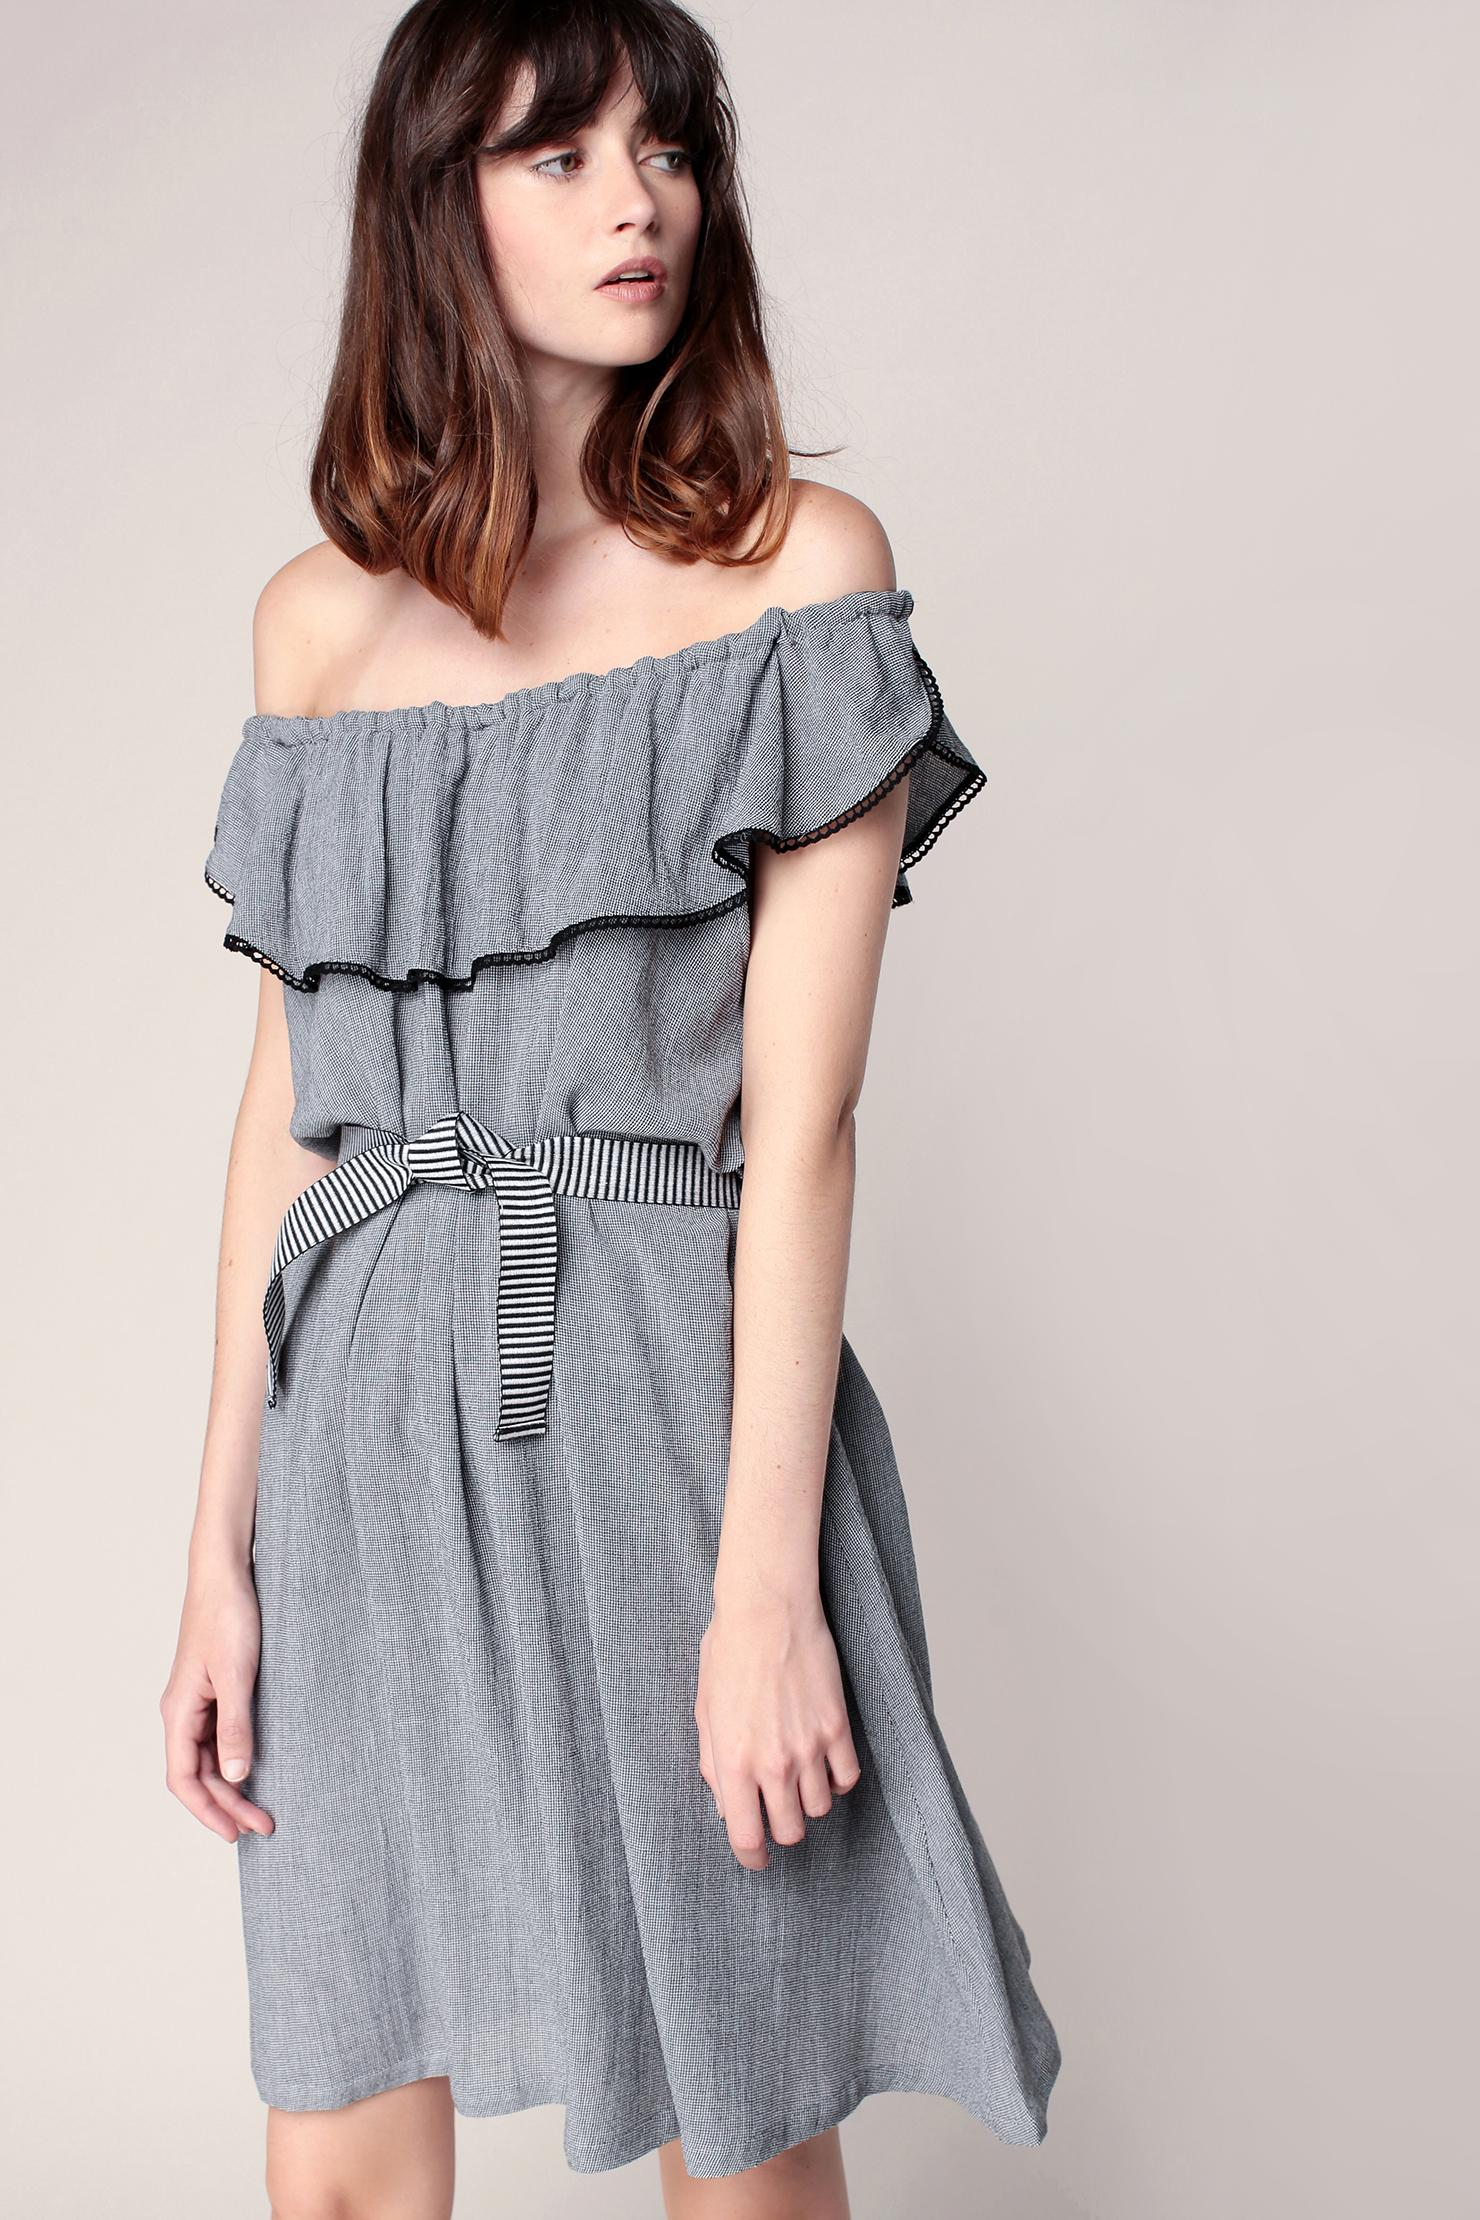 Pair grey summer dresses from Ever-Pretty with your favorite wedge or heel for the perfect evening look. Shop now for cute styles at affordable prices.